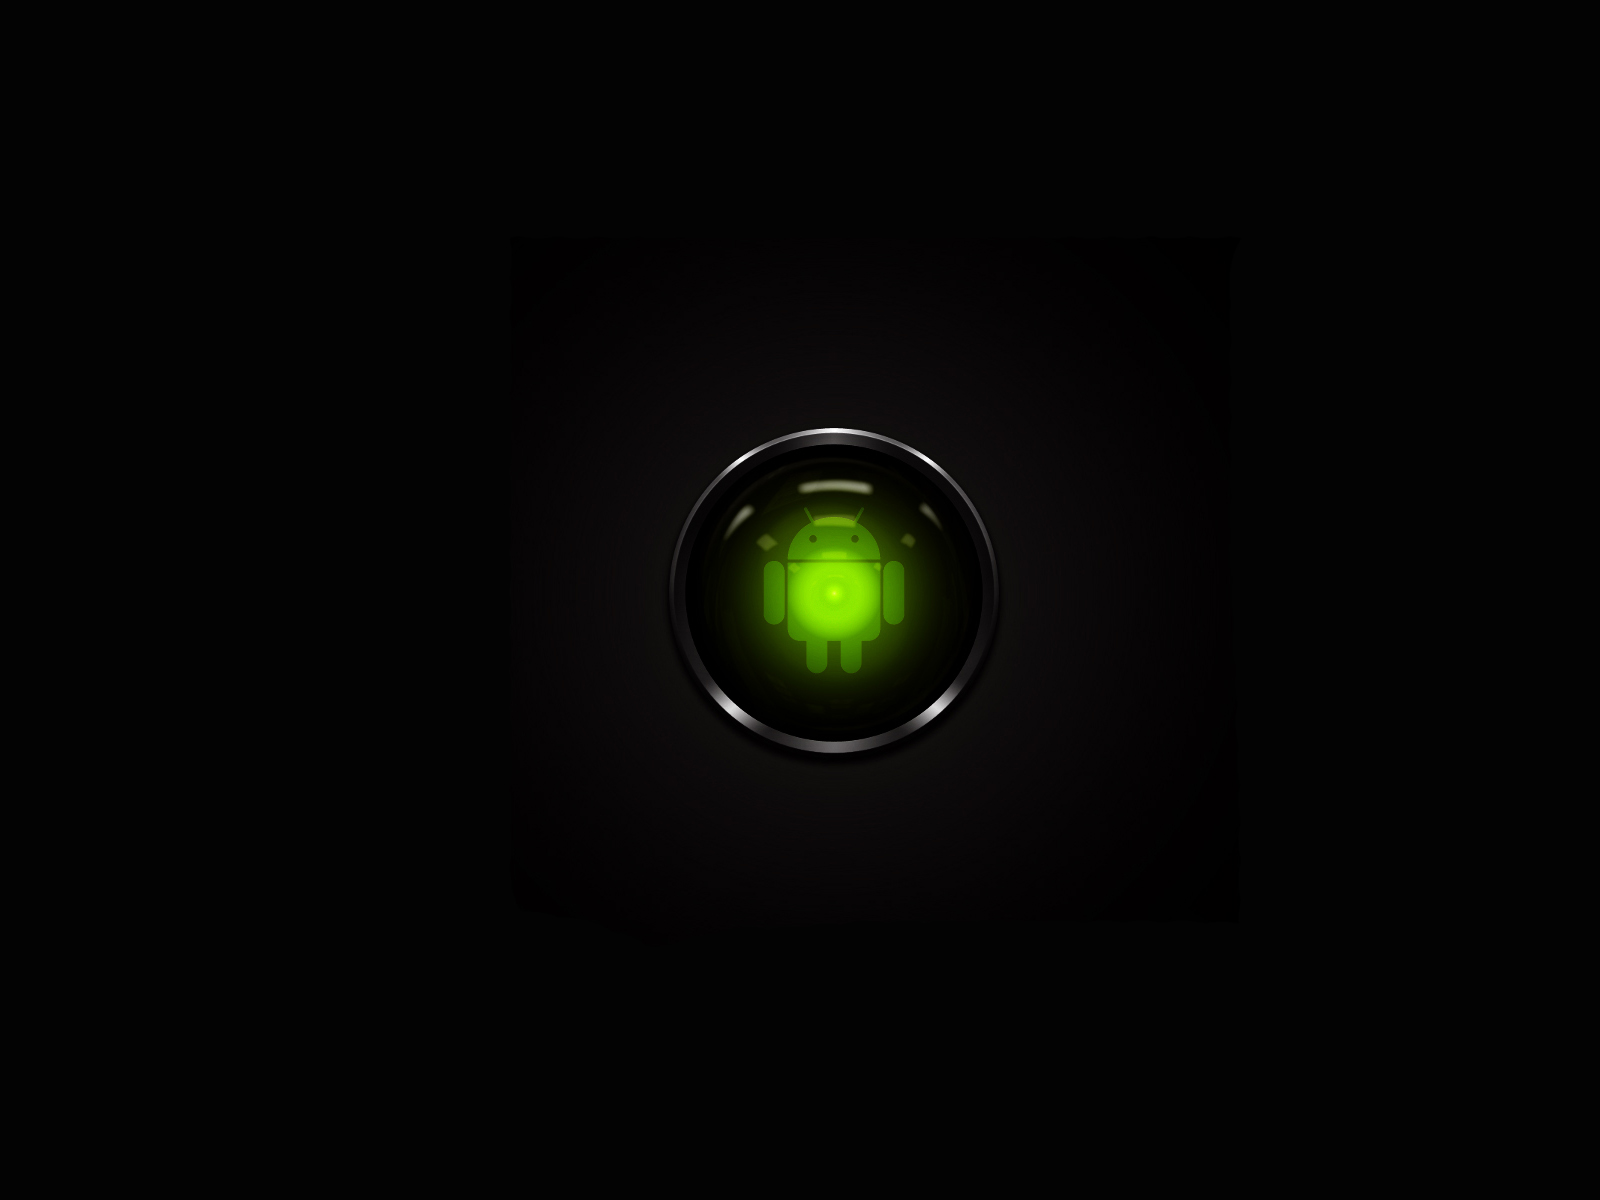 Android Wallpapers HD Black Background Simple Design